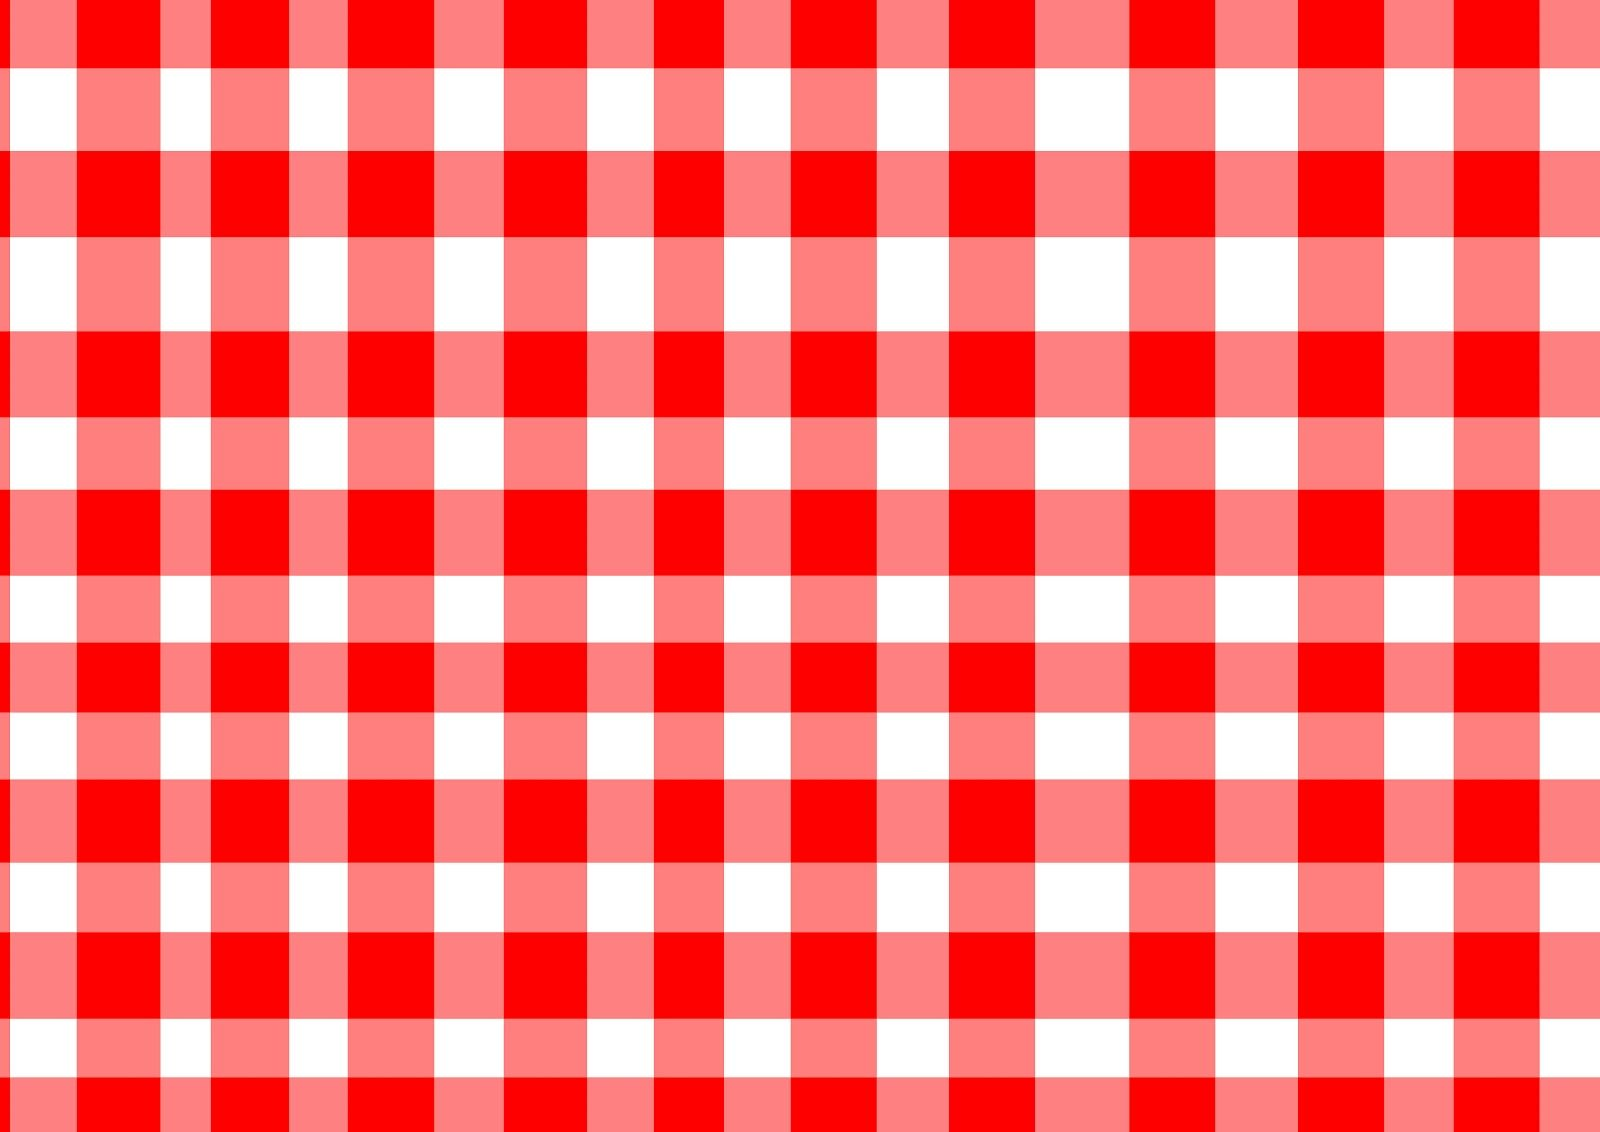 Wallpaper checkered white red squares ffffff ff0000